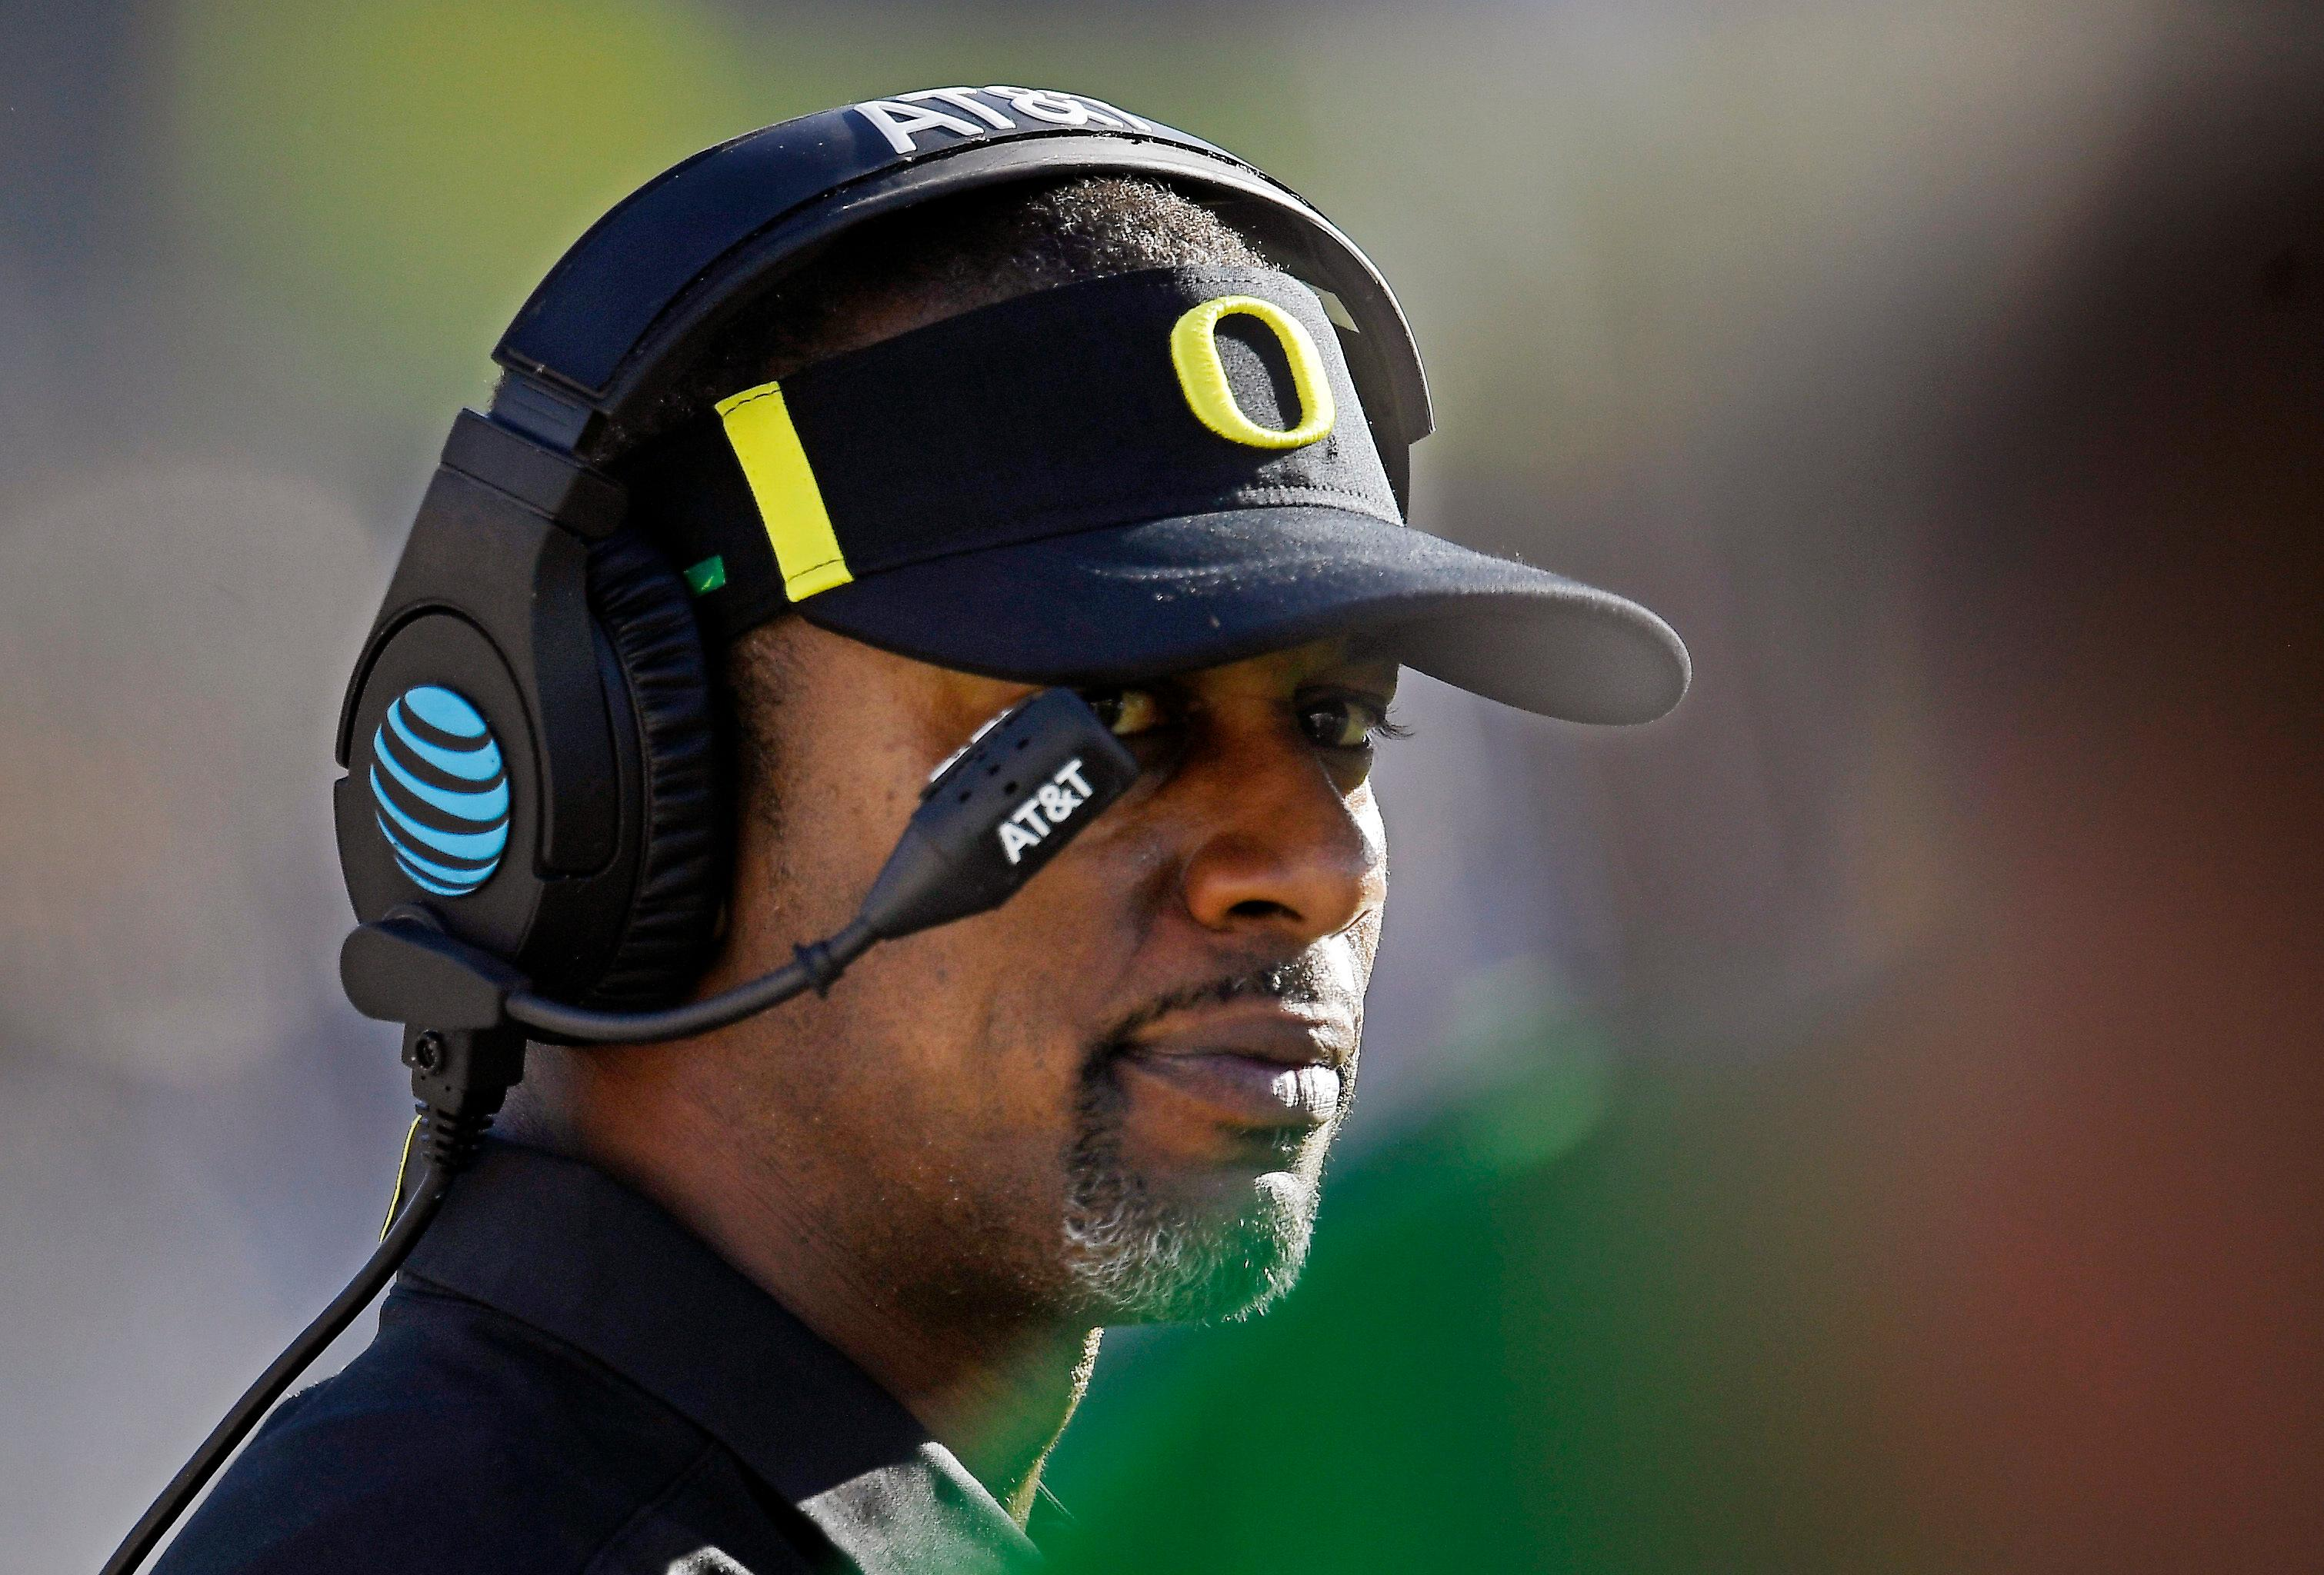 FILE - In this Oct. 21, 2017, file photo, Oregon head coach Willie Taggart looks on from the sideline during the second half of an NCAA college football game against UCLA in Pasadena, Calif.  A person with direct knowledge of the situation says Willie Taggart has agreed to become Florida State's next football coach.  The person says Taggart has called a team meeting to inform his Oregon players he is heading to Tallahassee to replace Jimbo Fisher. Florida State. The person spoke to The Associated Press Tuesday, Dec. 5, 2017, on condition of anonymity because neither school had announced the move.  (AP Photo/Mark J. Terrill, File)